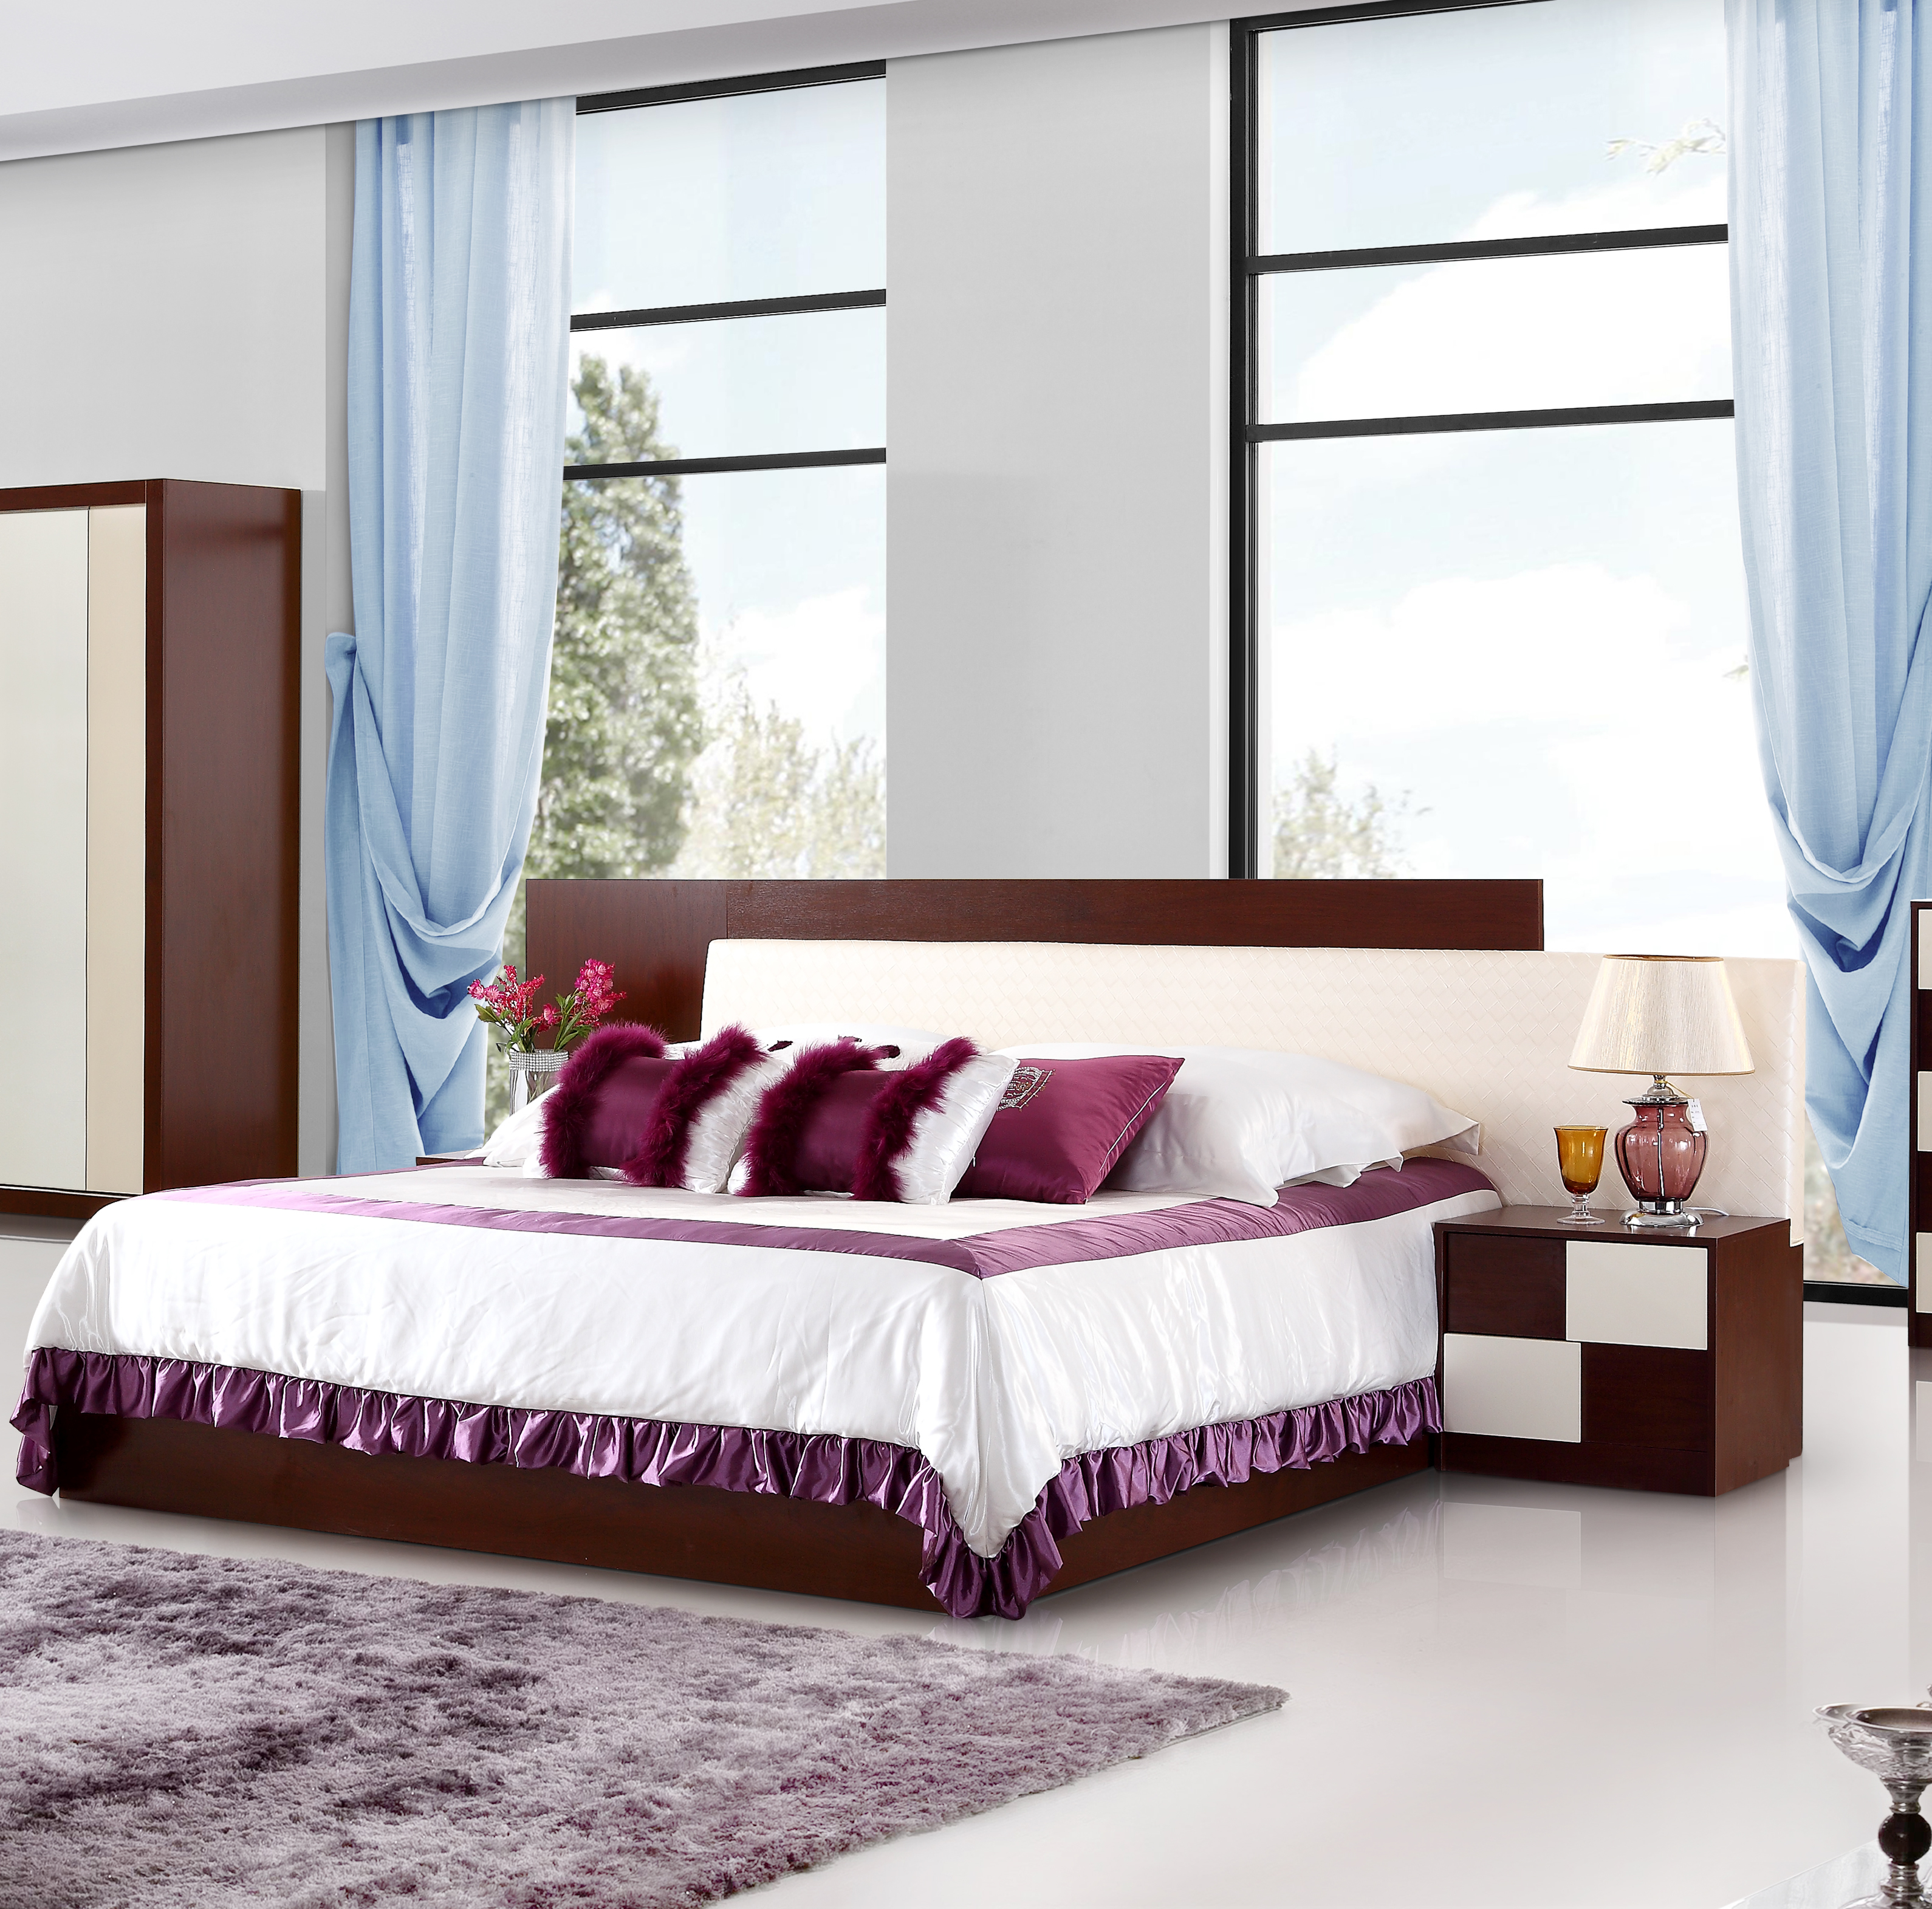 Modern Bed Room Furniture Bedroom Setking Size China Bedroom within 12 Smart Concepts of How to Makeover Modern Bedroom Set